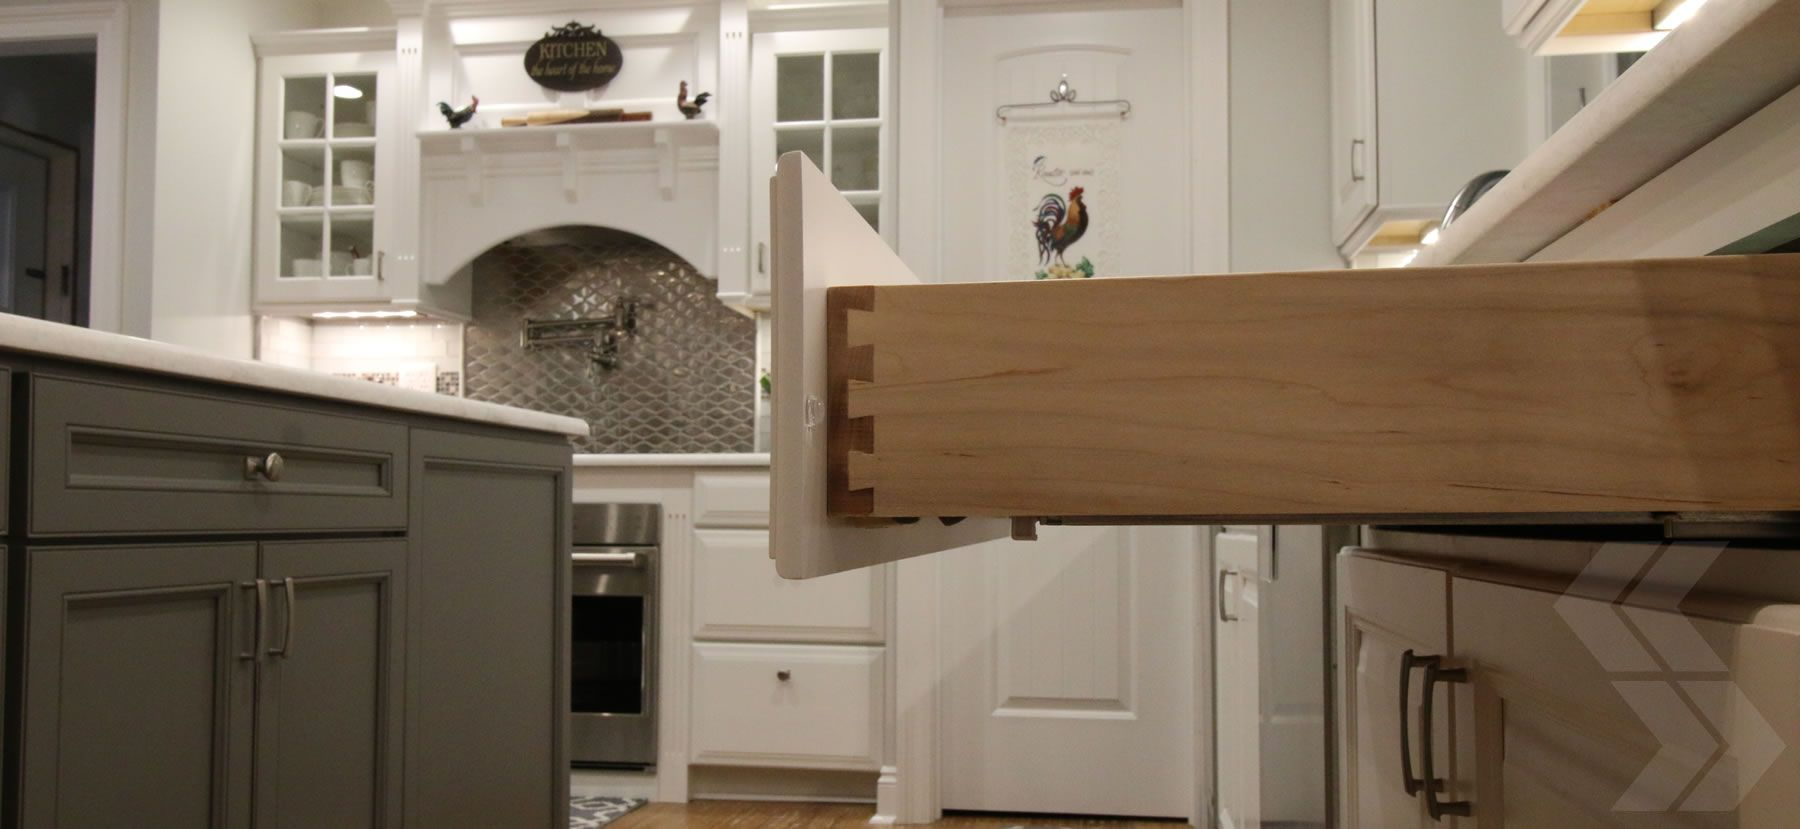 Deerfield™ Assembled Kitchen Cabinets | Cabinets.com by ...